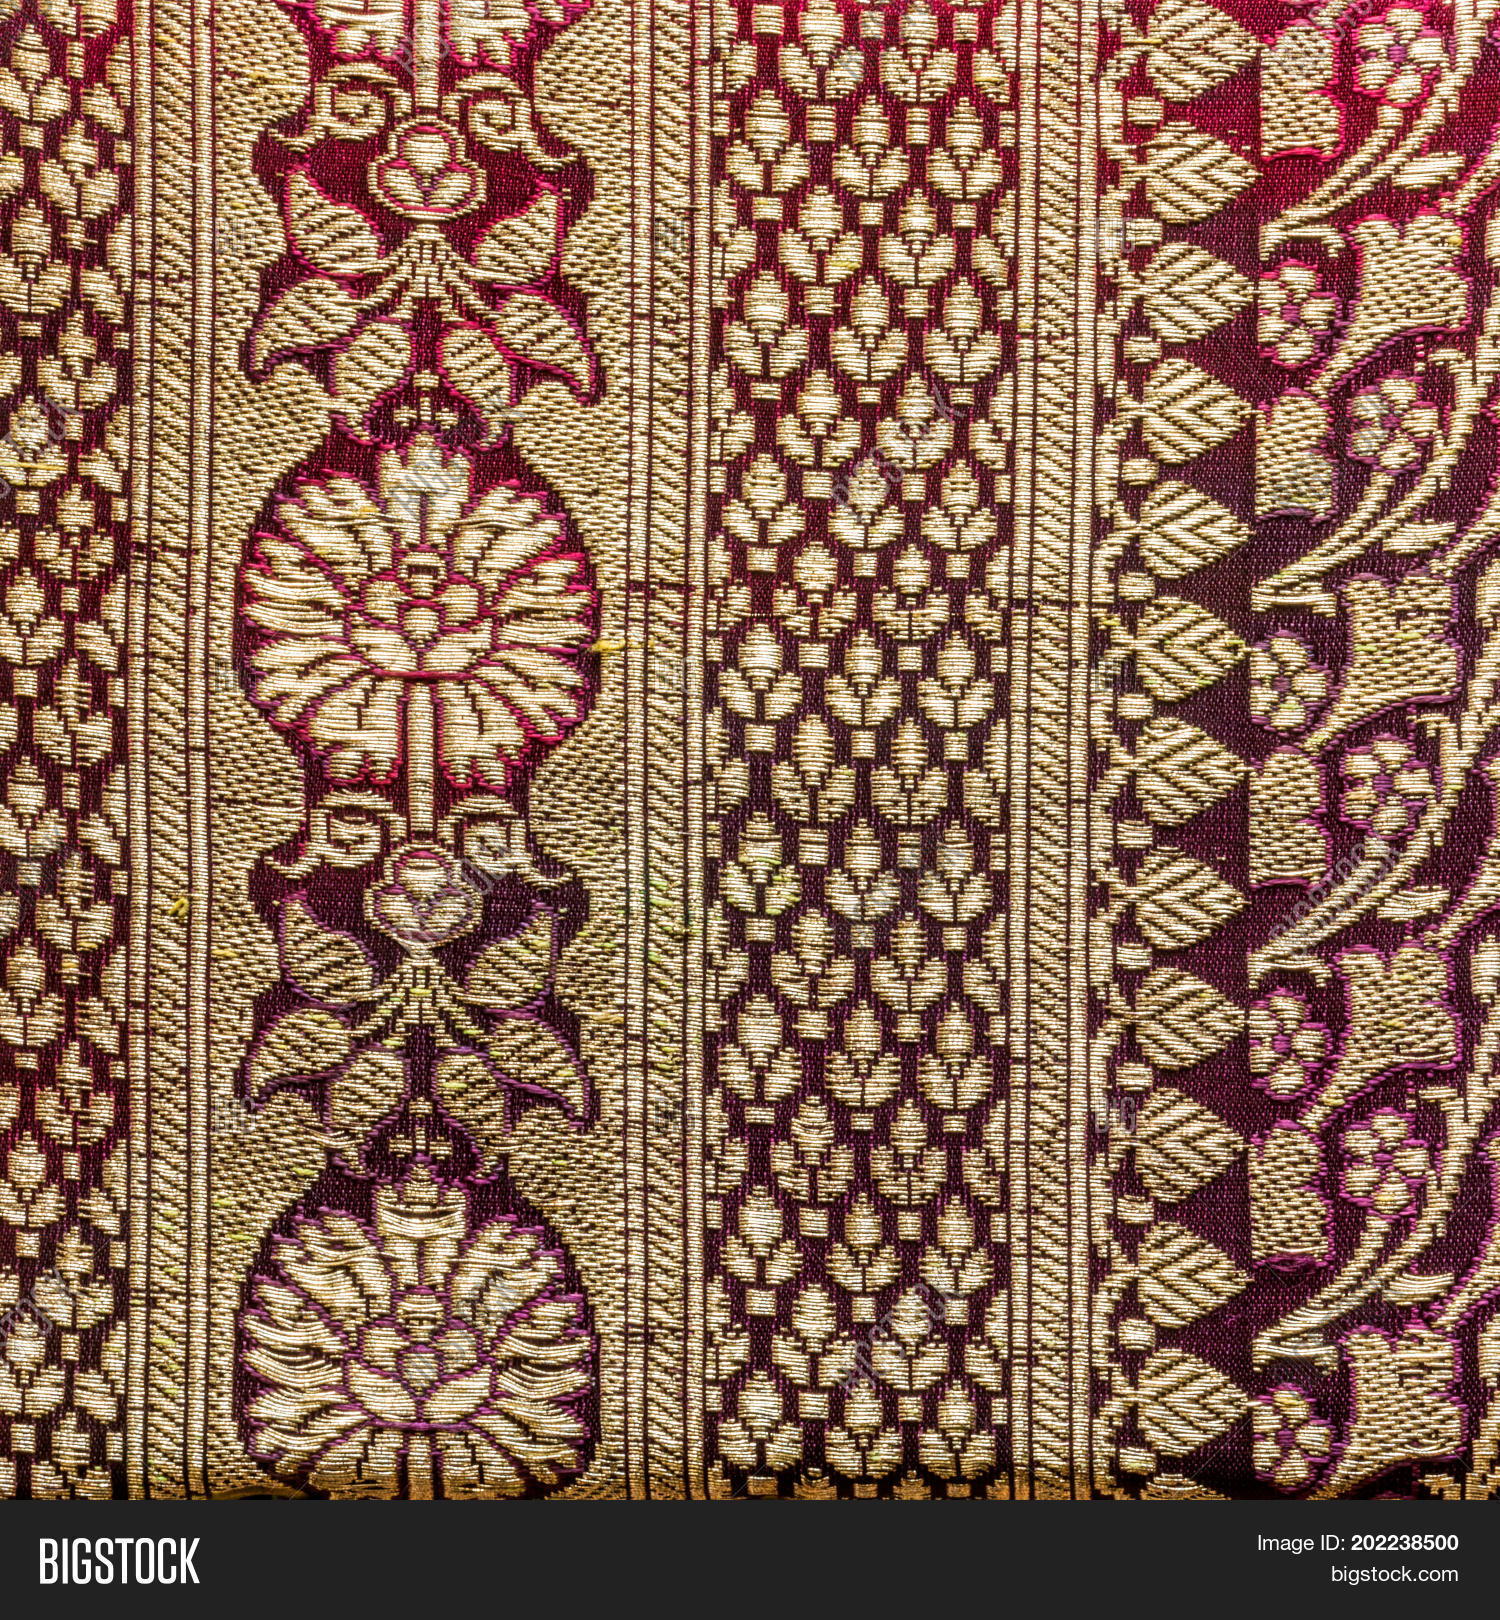 Traditional Indian Fabric Texture Image  for Indian Fabric Designs Patterns  174mzq